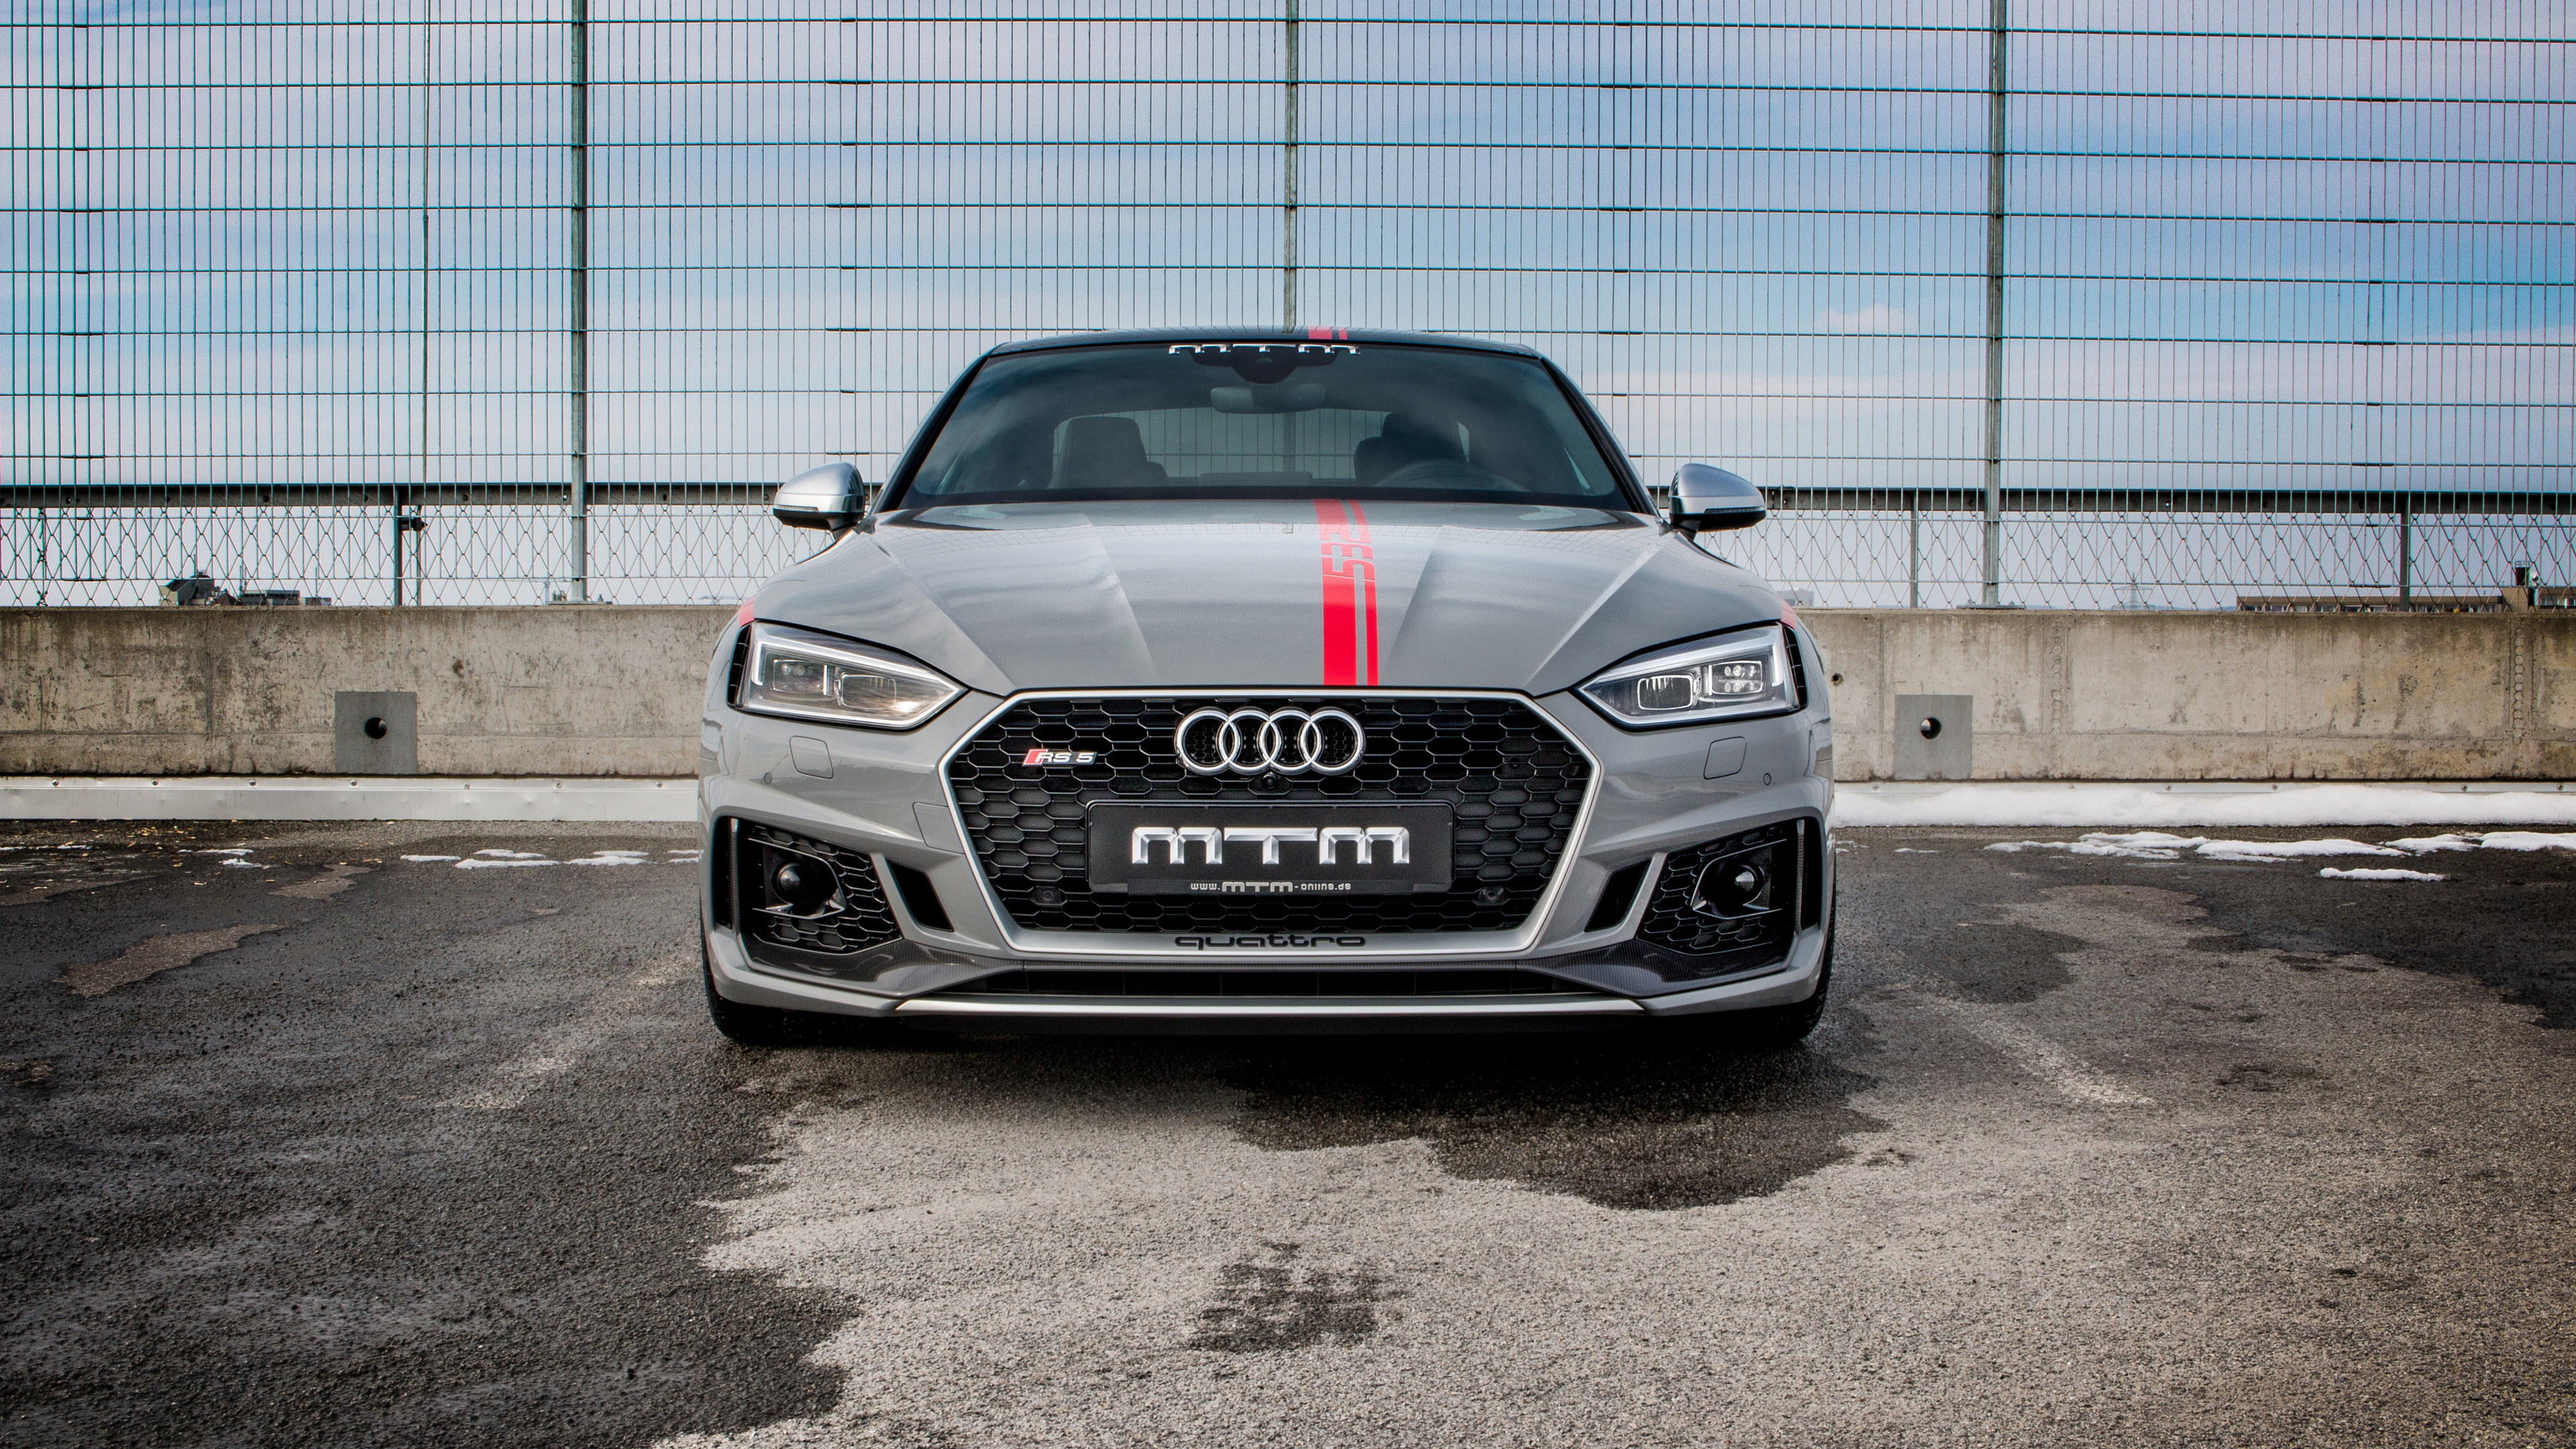 mtm audi rs 5 r 1539110063 - MTM Audi RS 5 R - hd-wallpapers, cars wallpapers, audi wallpapers, audi rs5 wallpapers, 4k-wallpapers, 2018 cars wallpapers